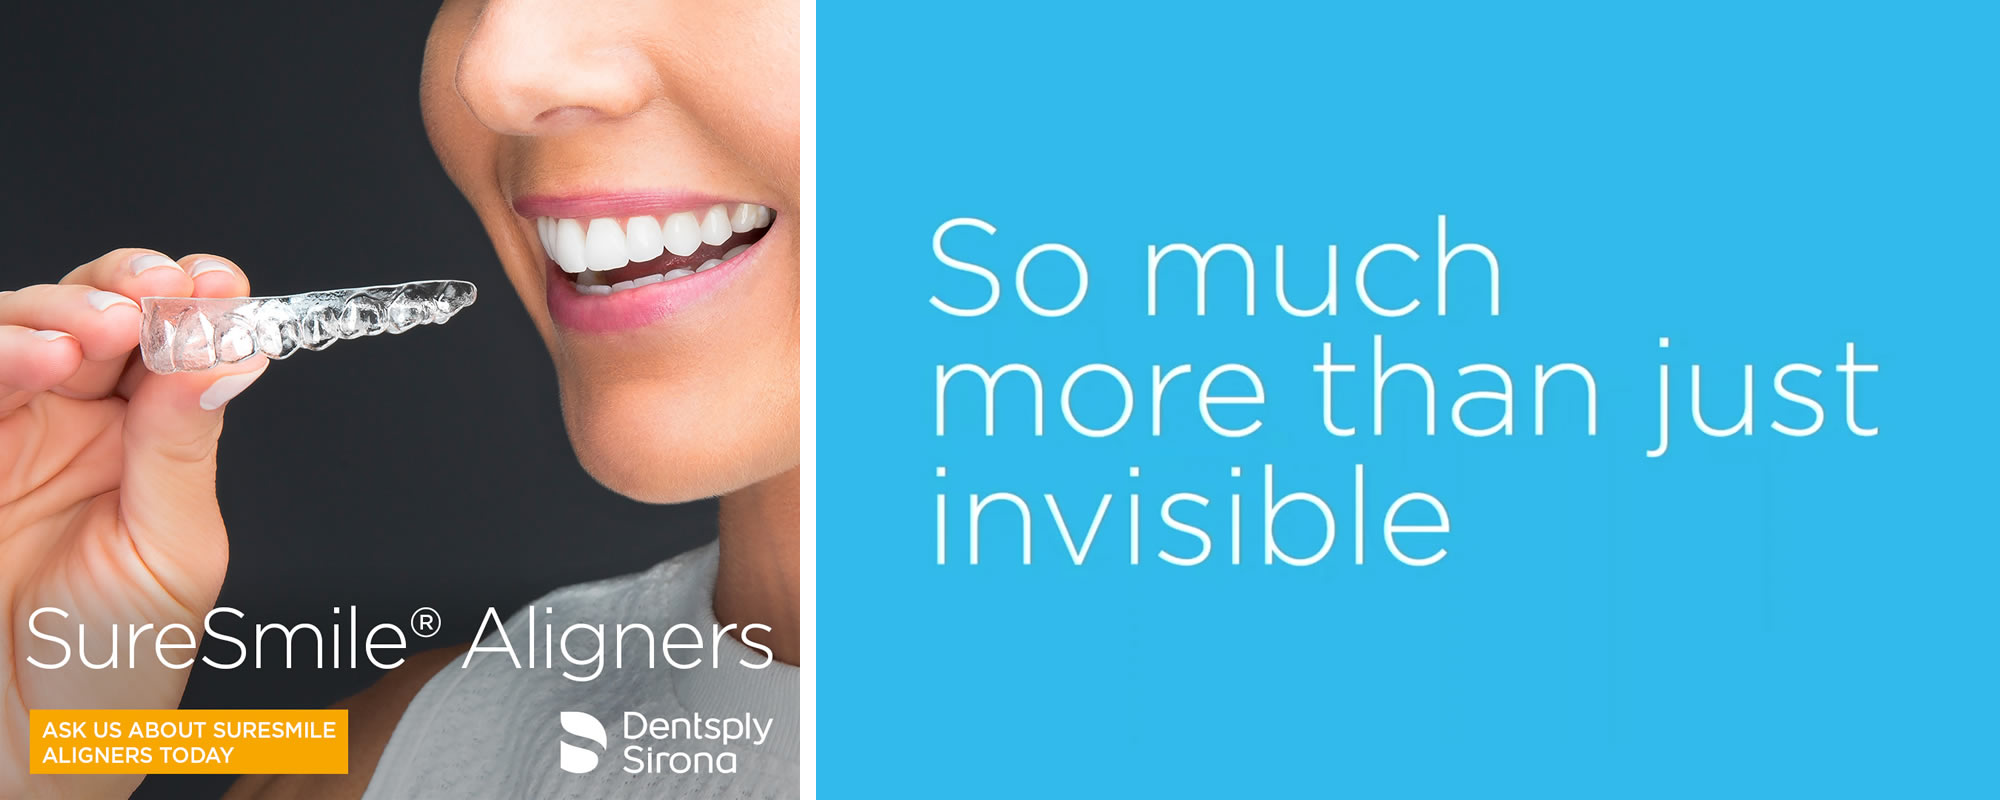 Sure Smile Orthodontist Bexleyheath